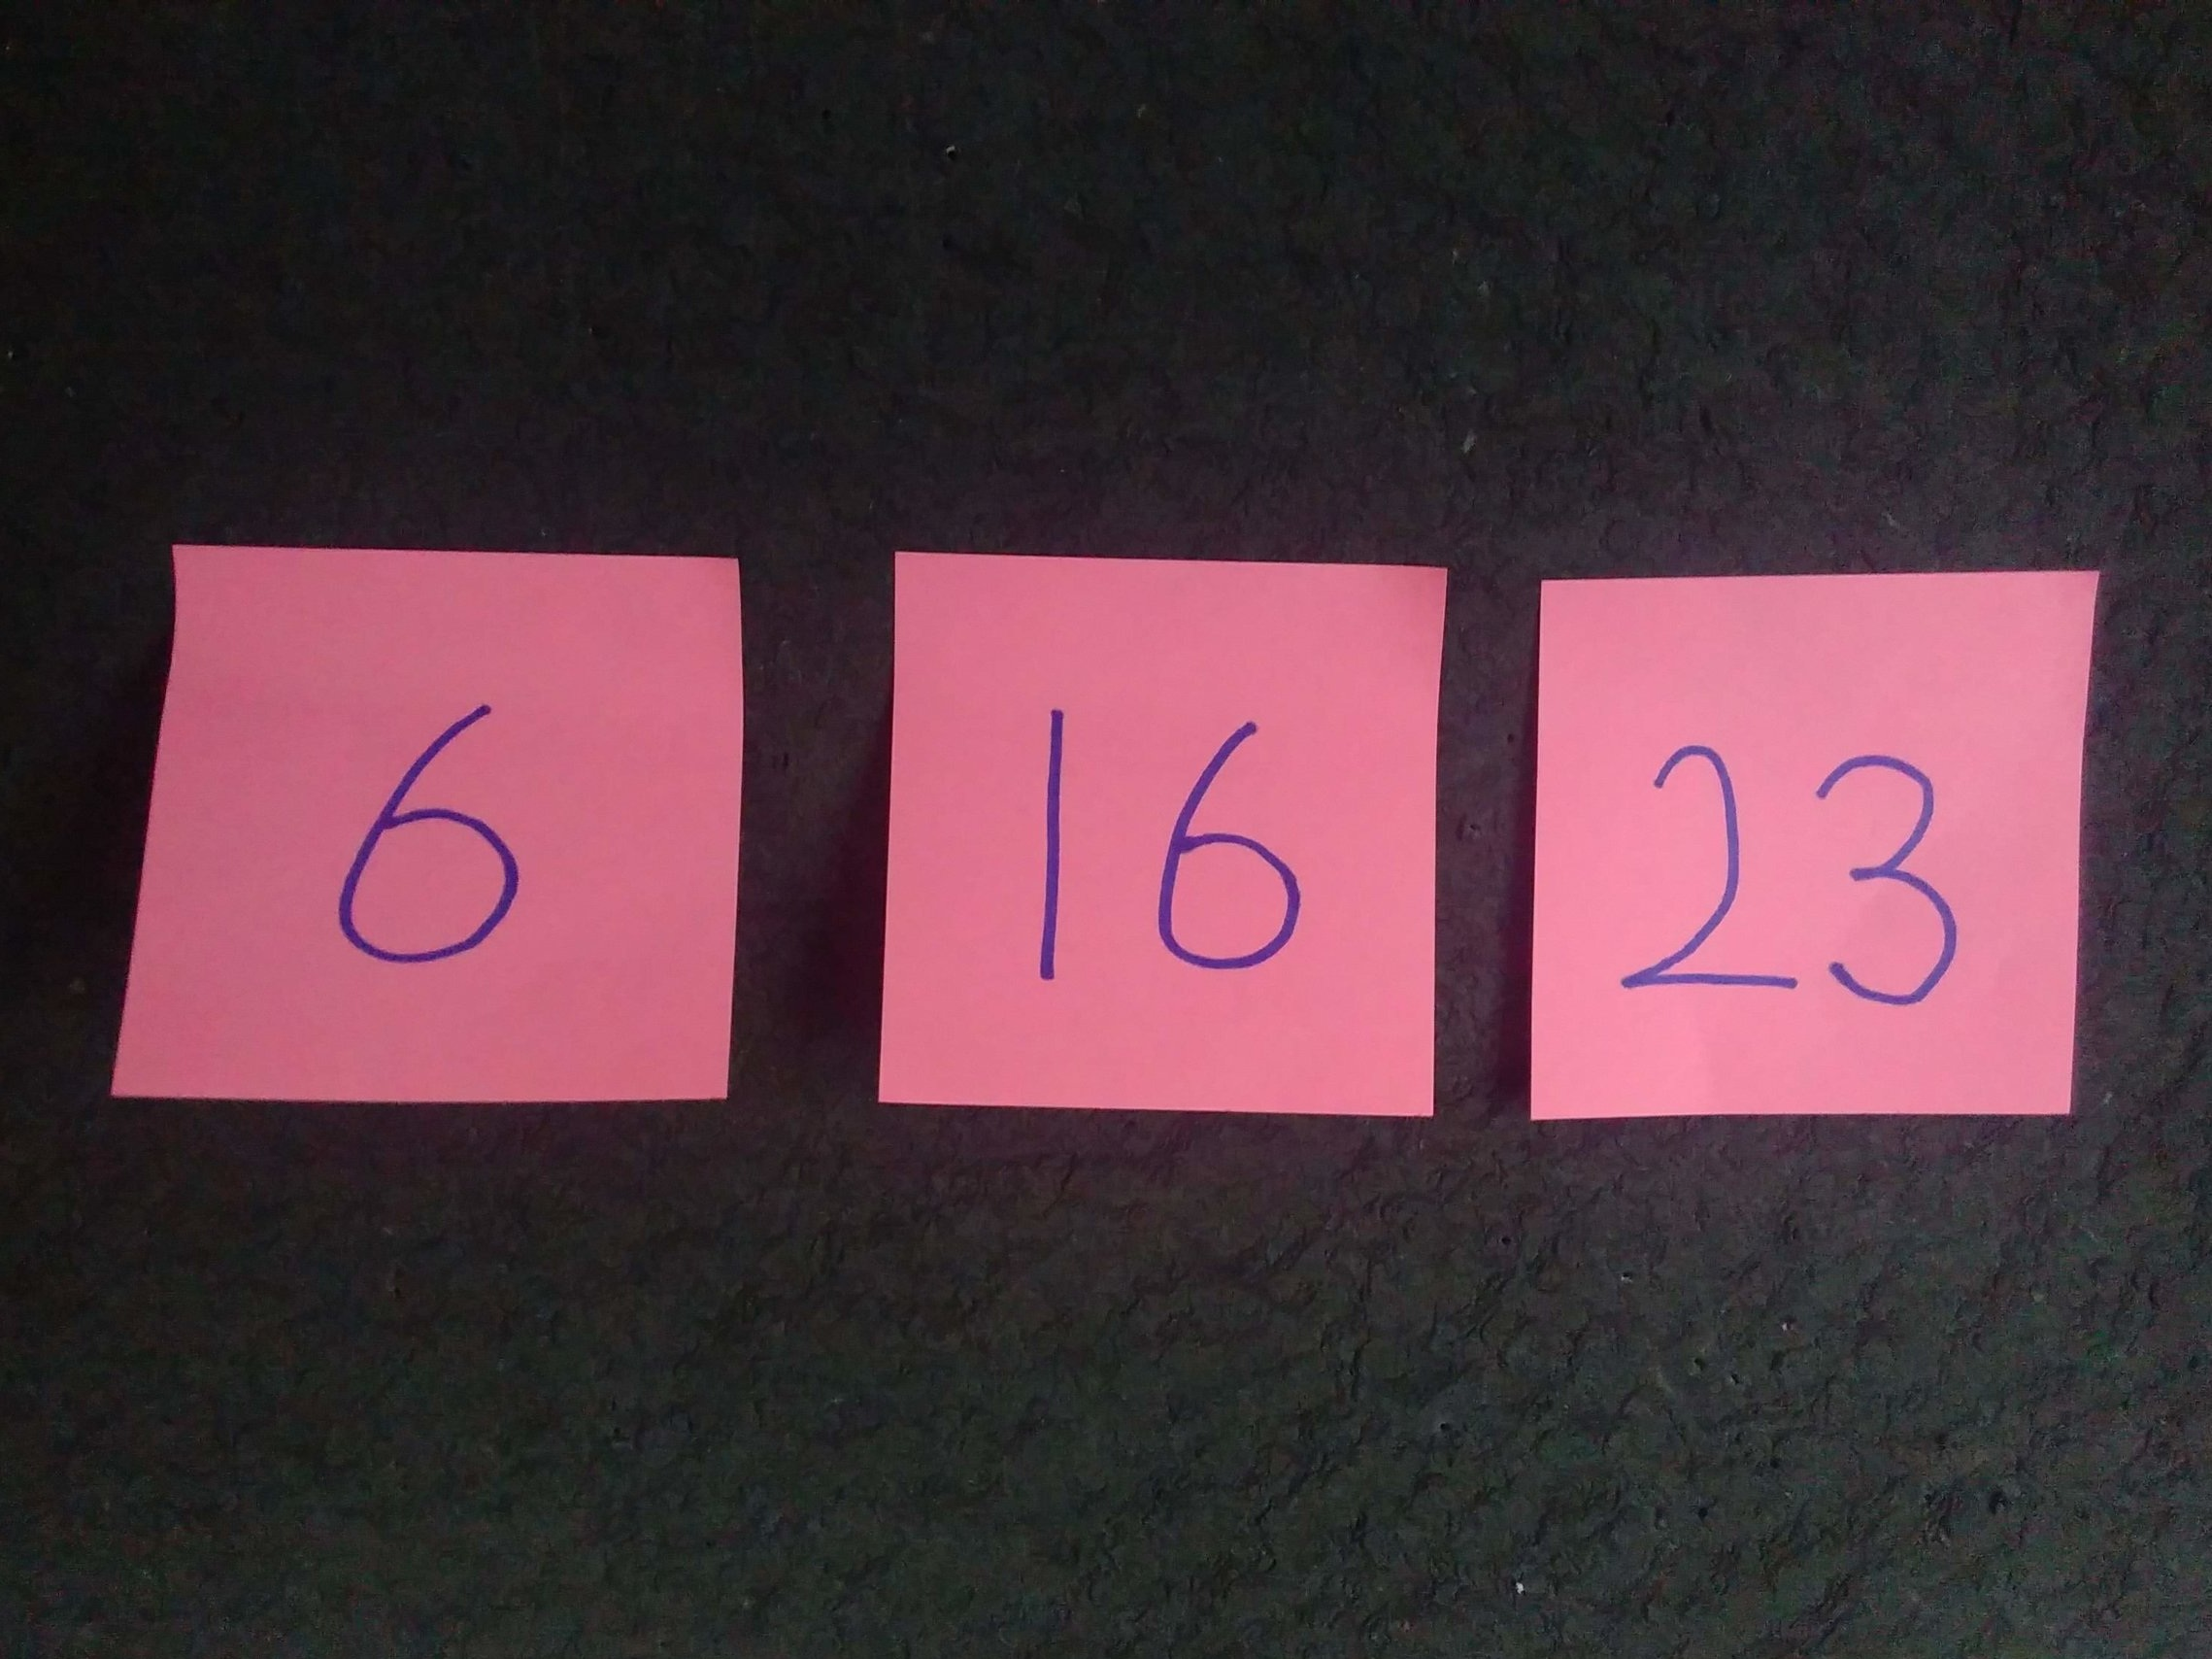 Three different numbers written on sticky notes